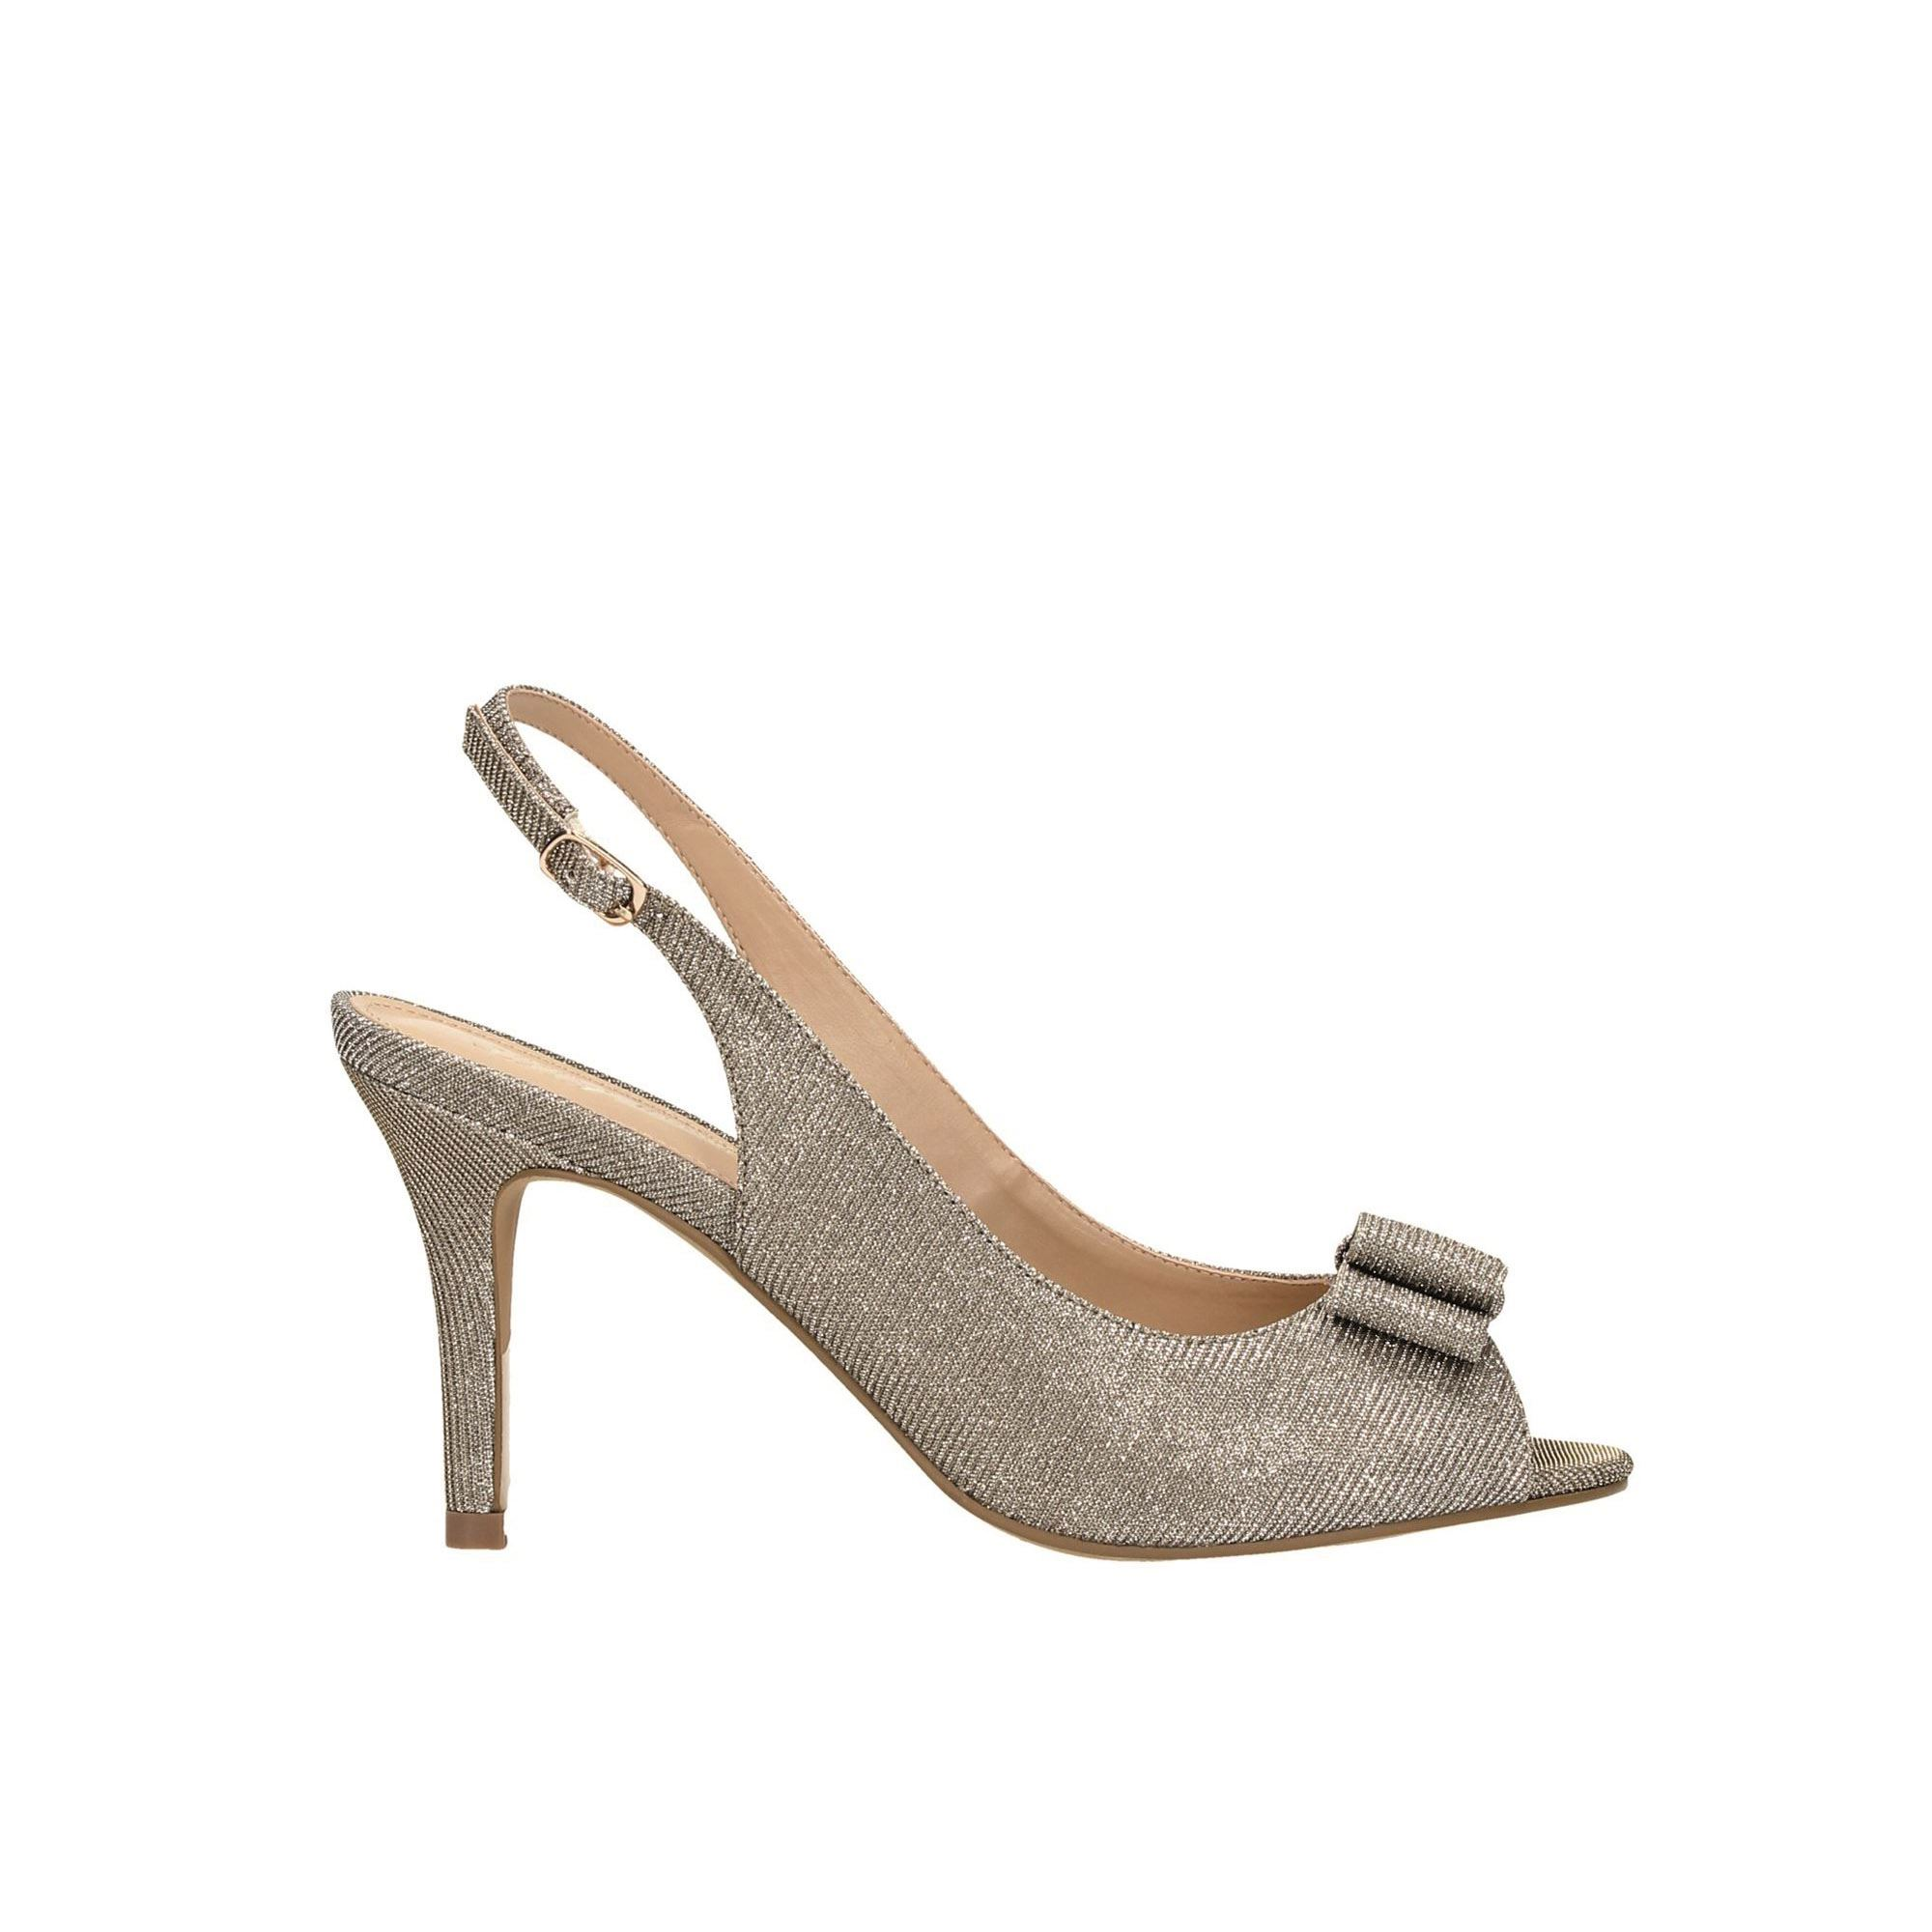 Tata Italia Shoes Woman Décolleté Gold 9034L-15/E18